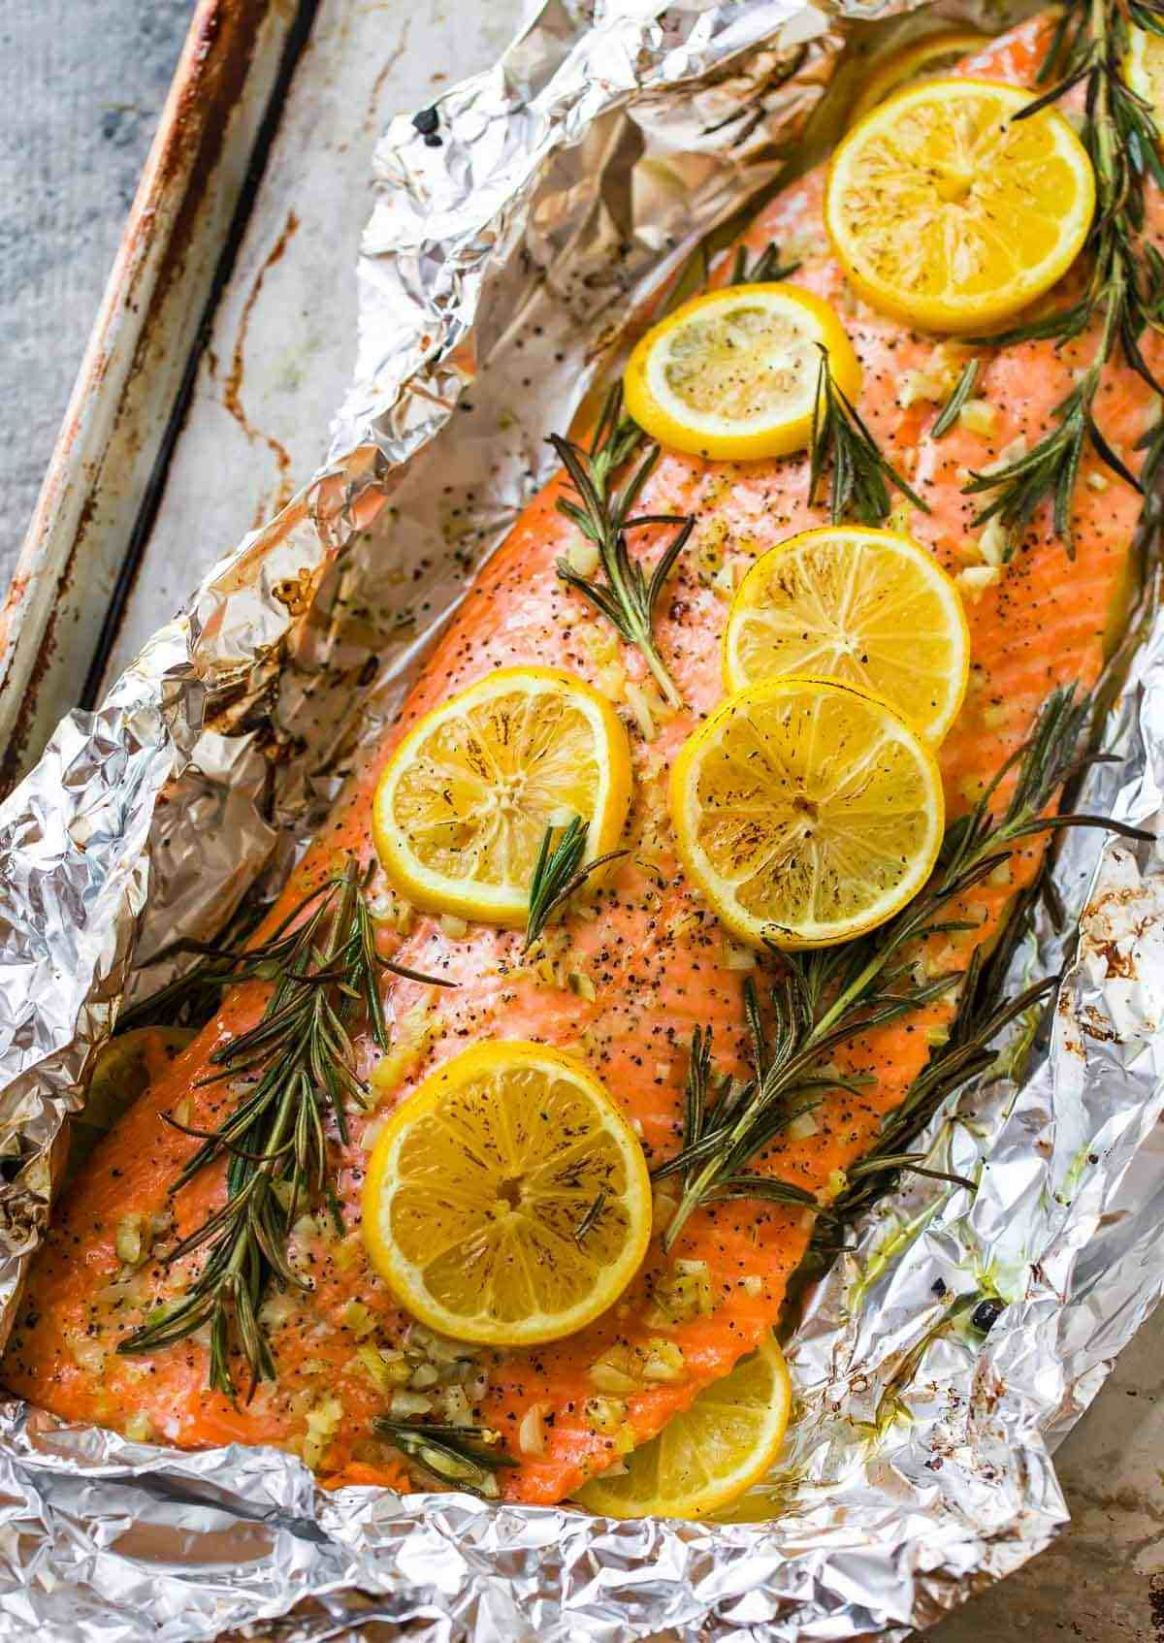 Baked Salmon in Foil - Recipes Fish Salmon